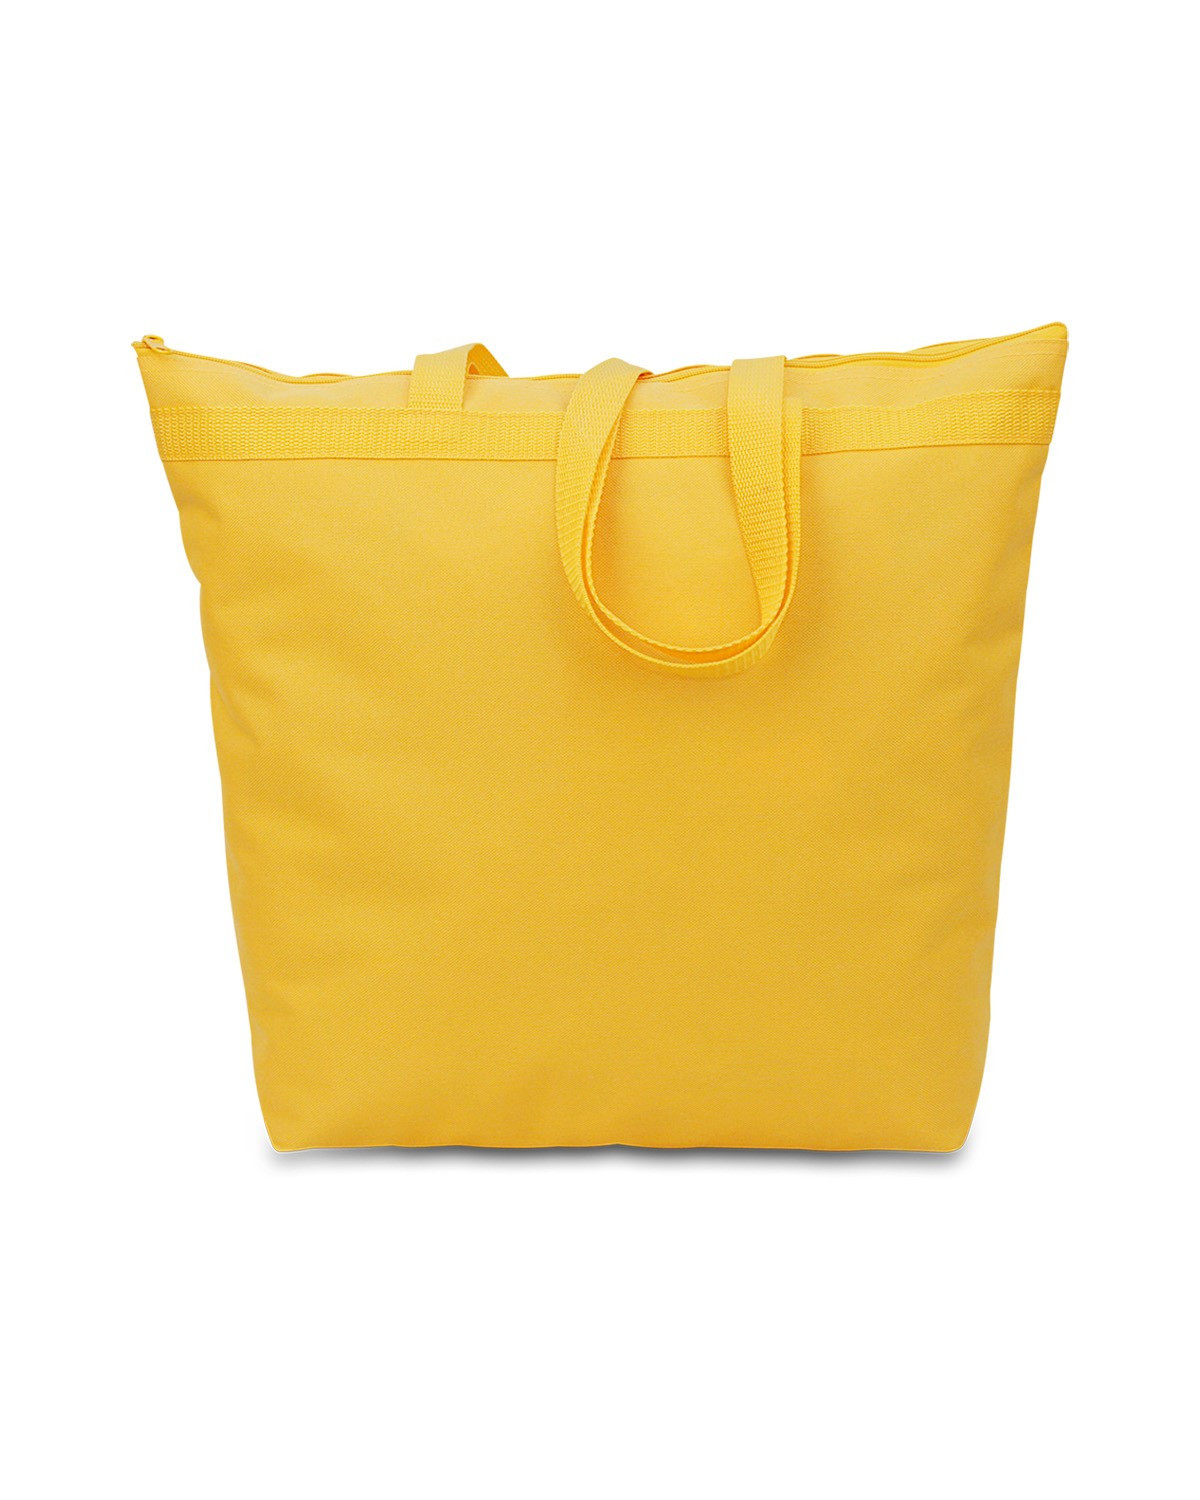 8802 Liberty Bags GOLDEN YELLOW